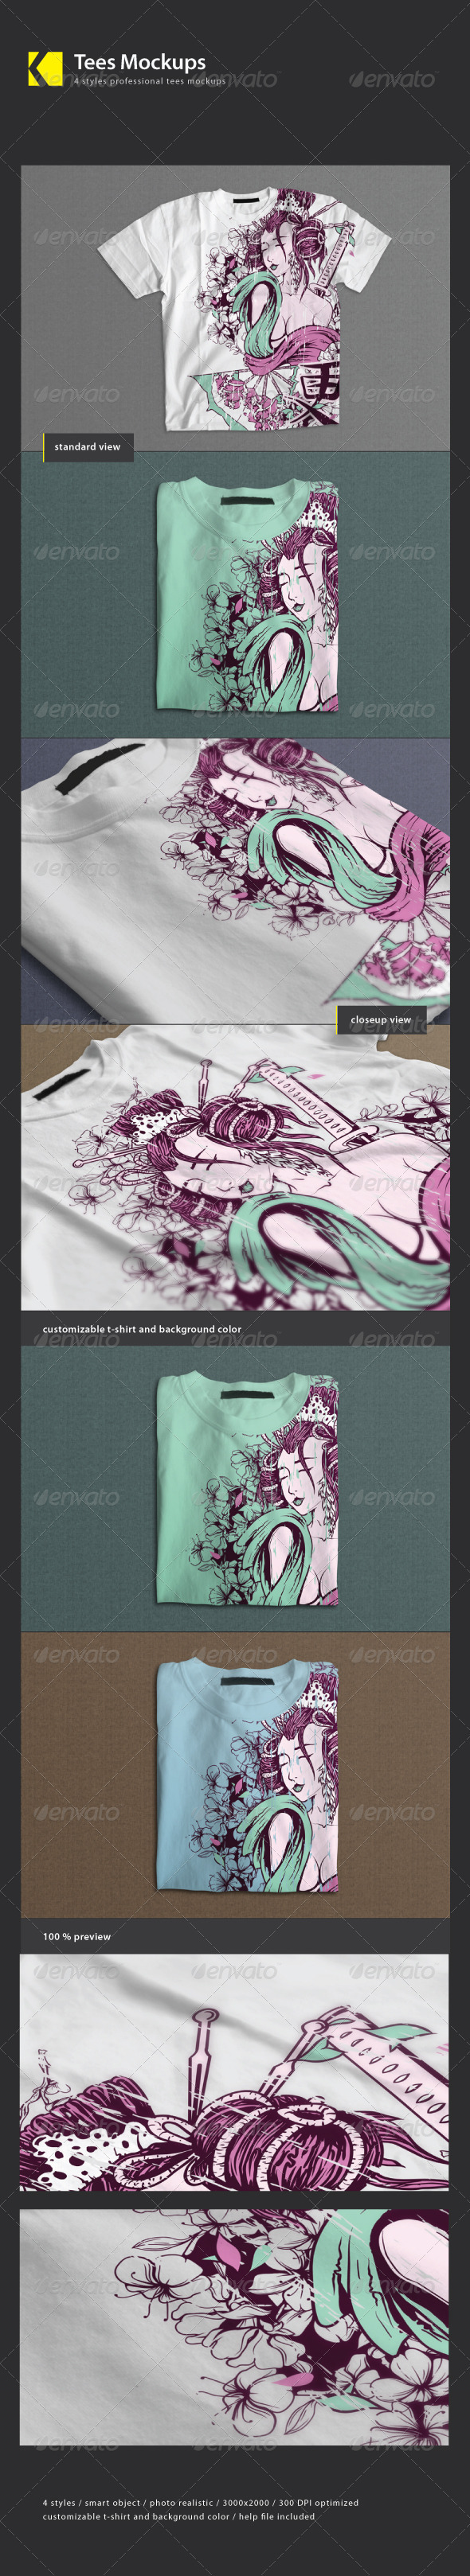 GraphicRiver Tees Mock-Ups 3261090